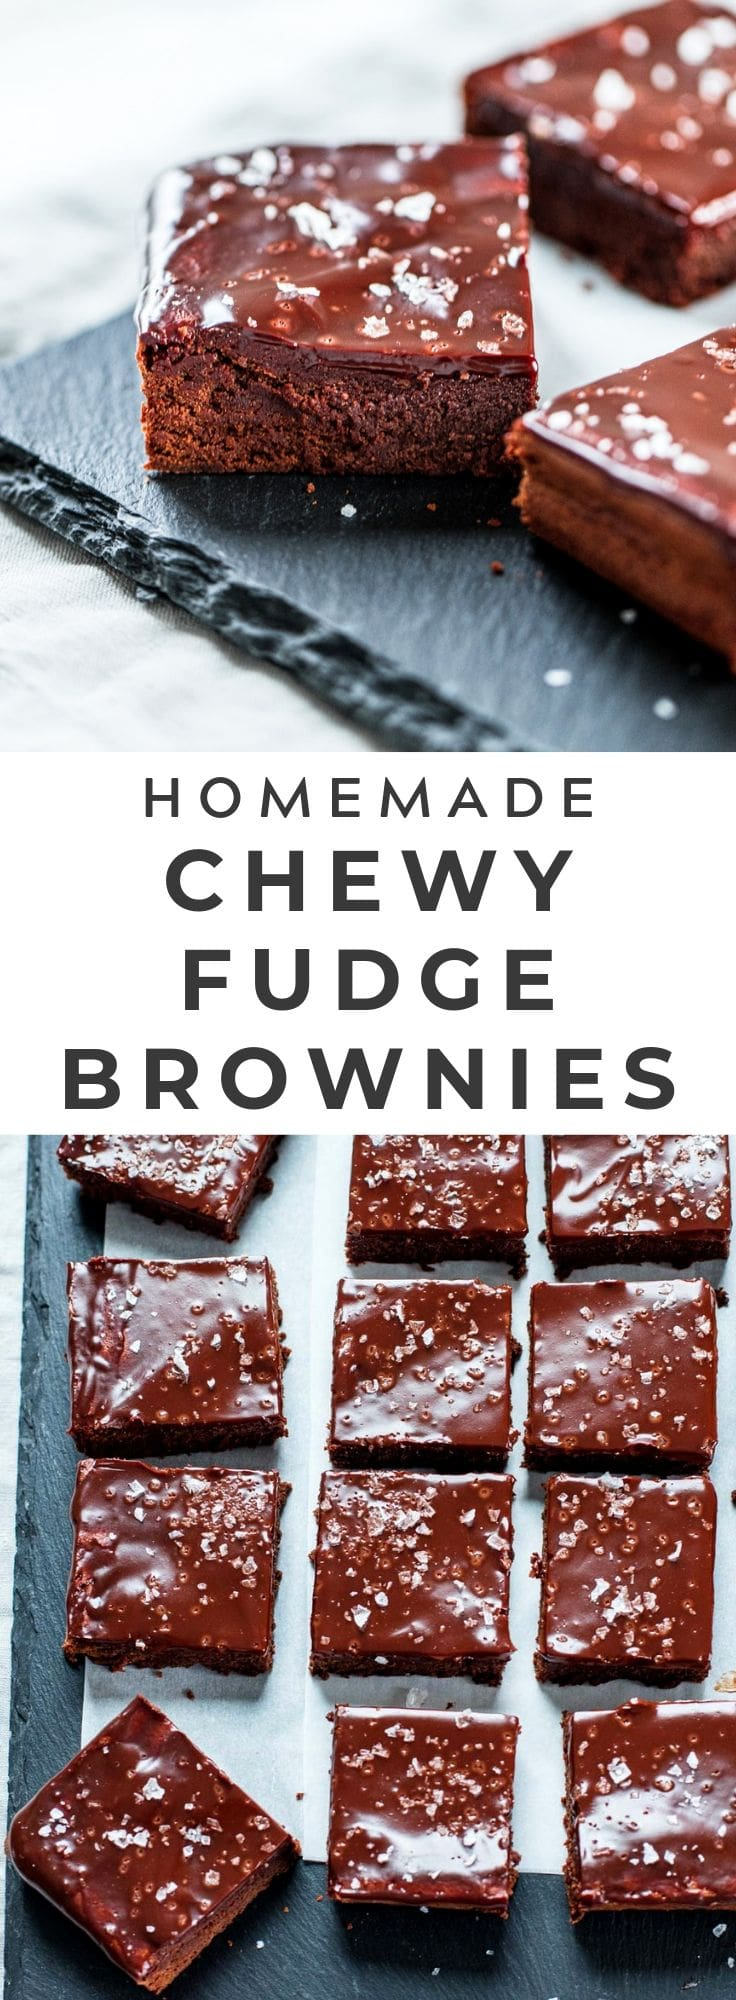 The BEST chewy fudge brownies from scratch, glazed with chocolate and sea salt